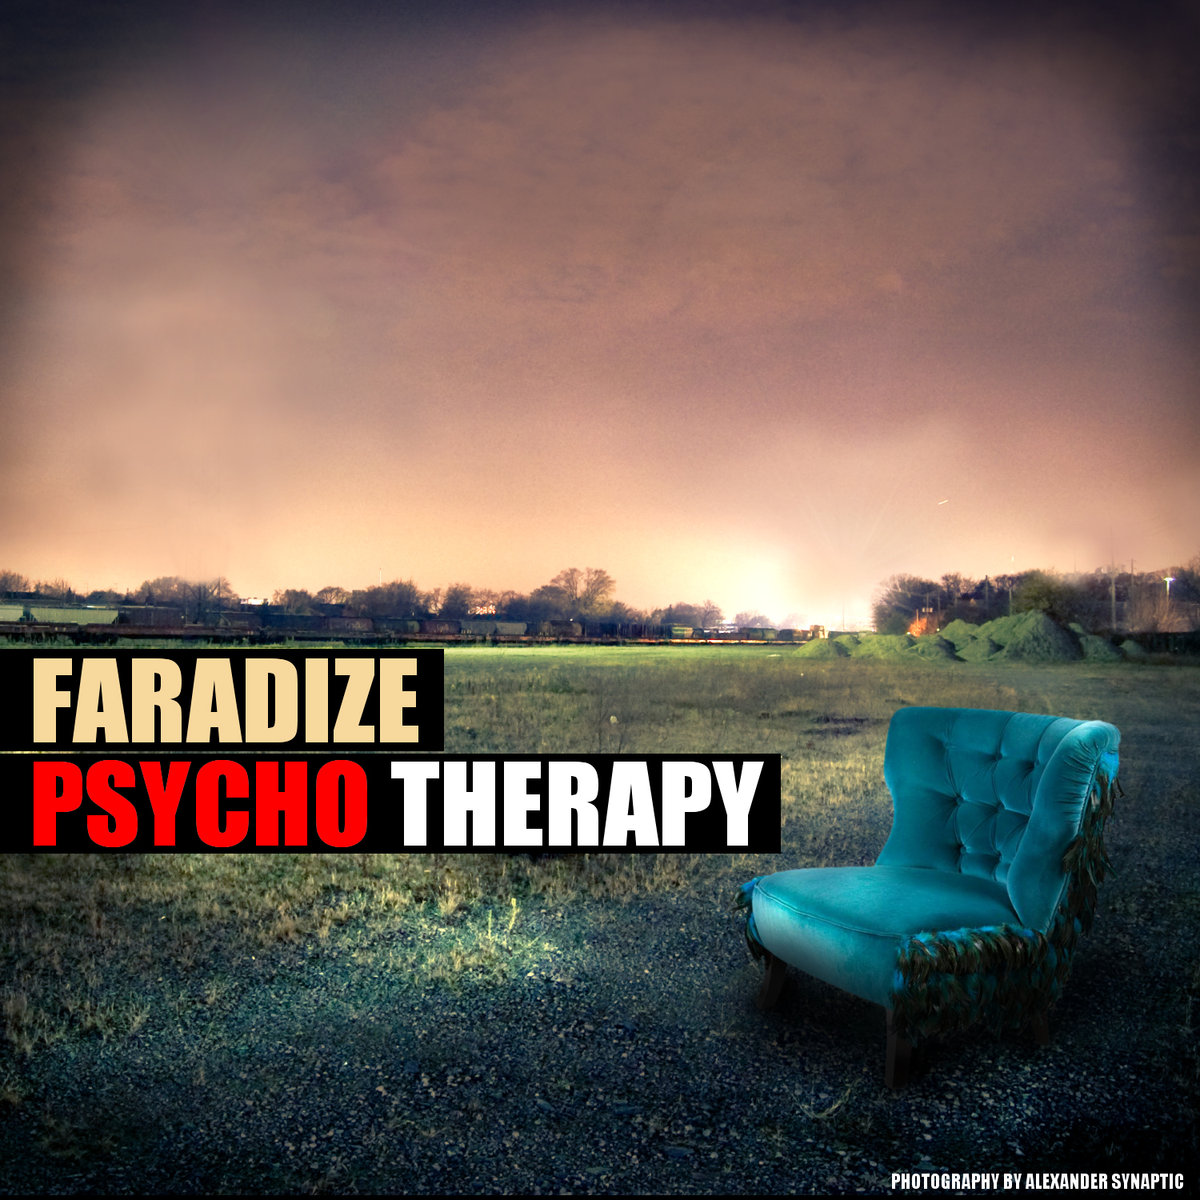 Faradize - Psycho Therapy @ 'Psycho Therapy' album (electronic, goa)